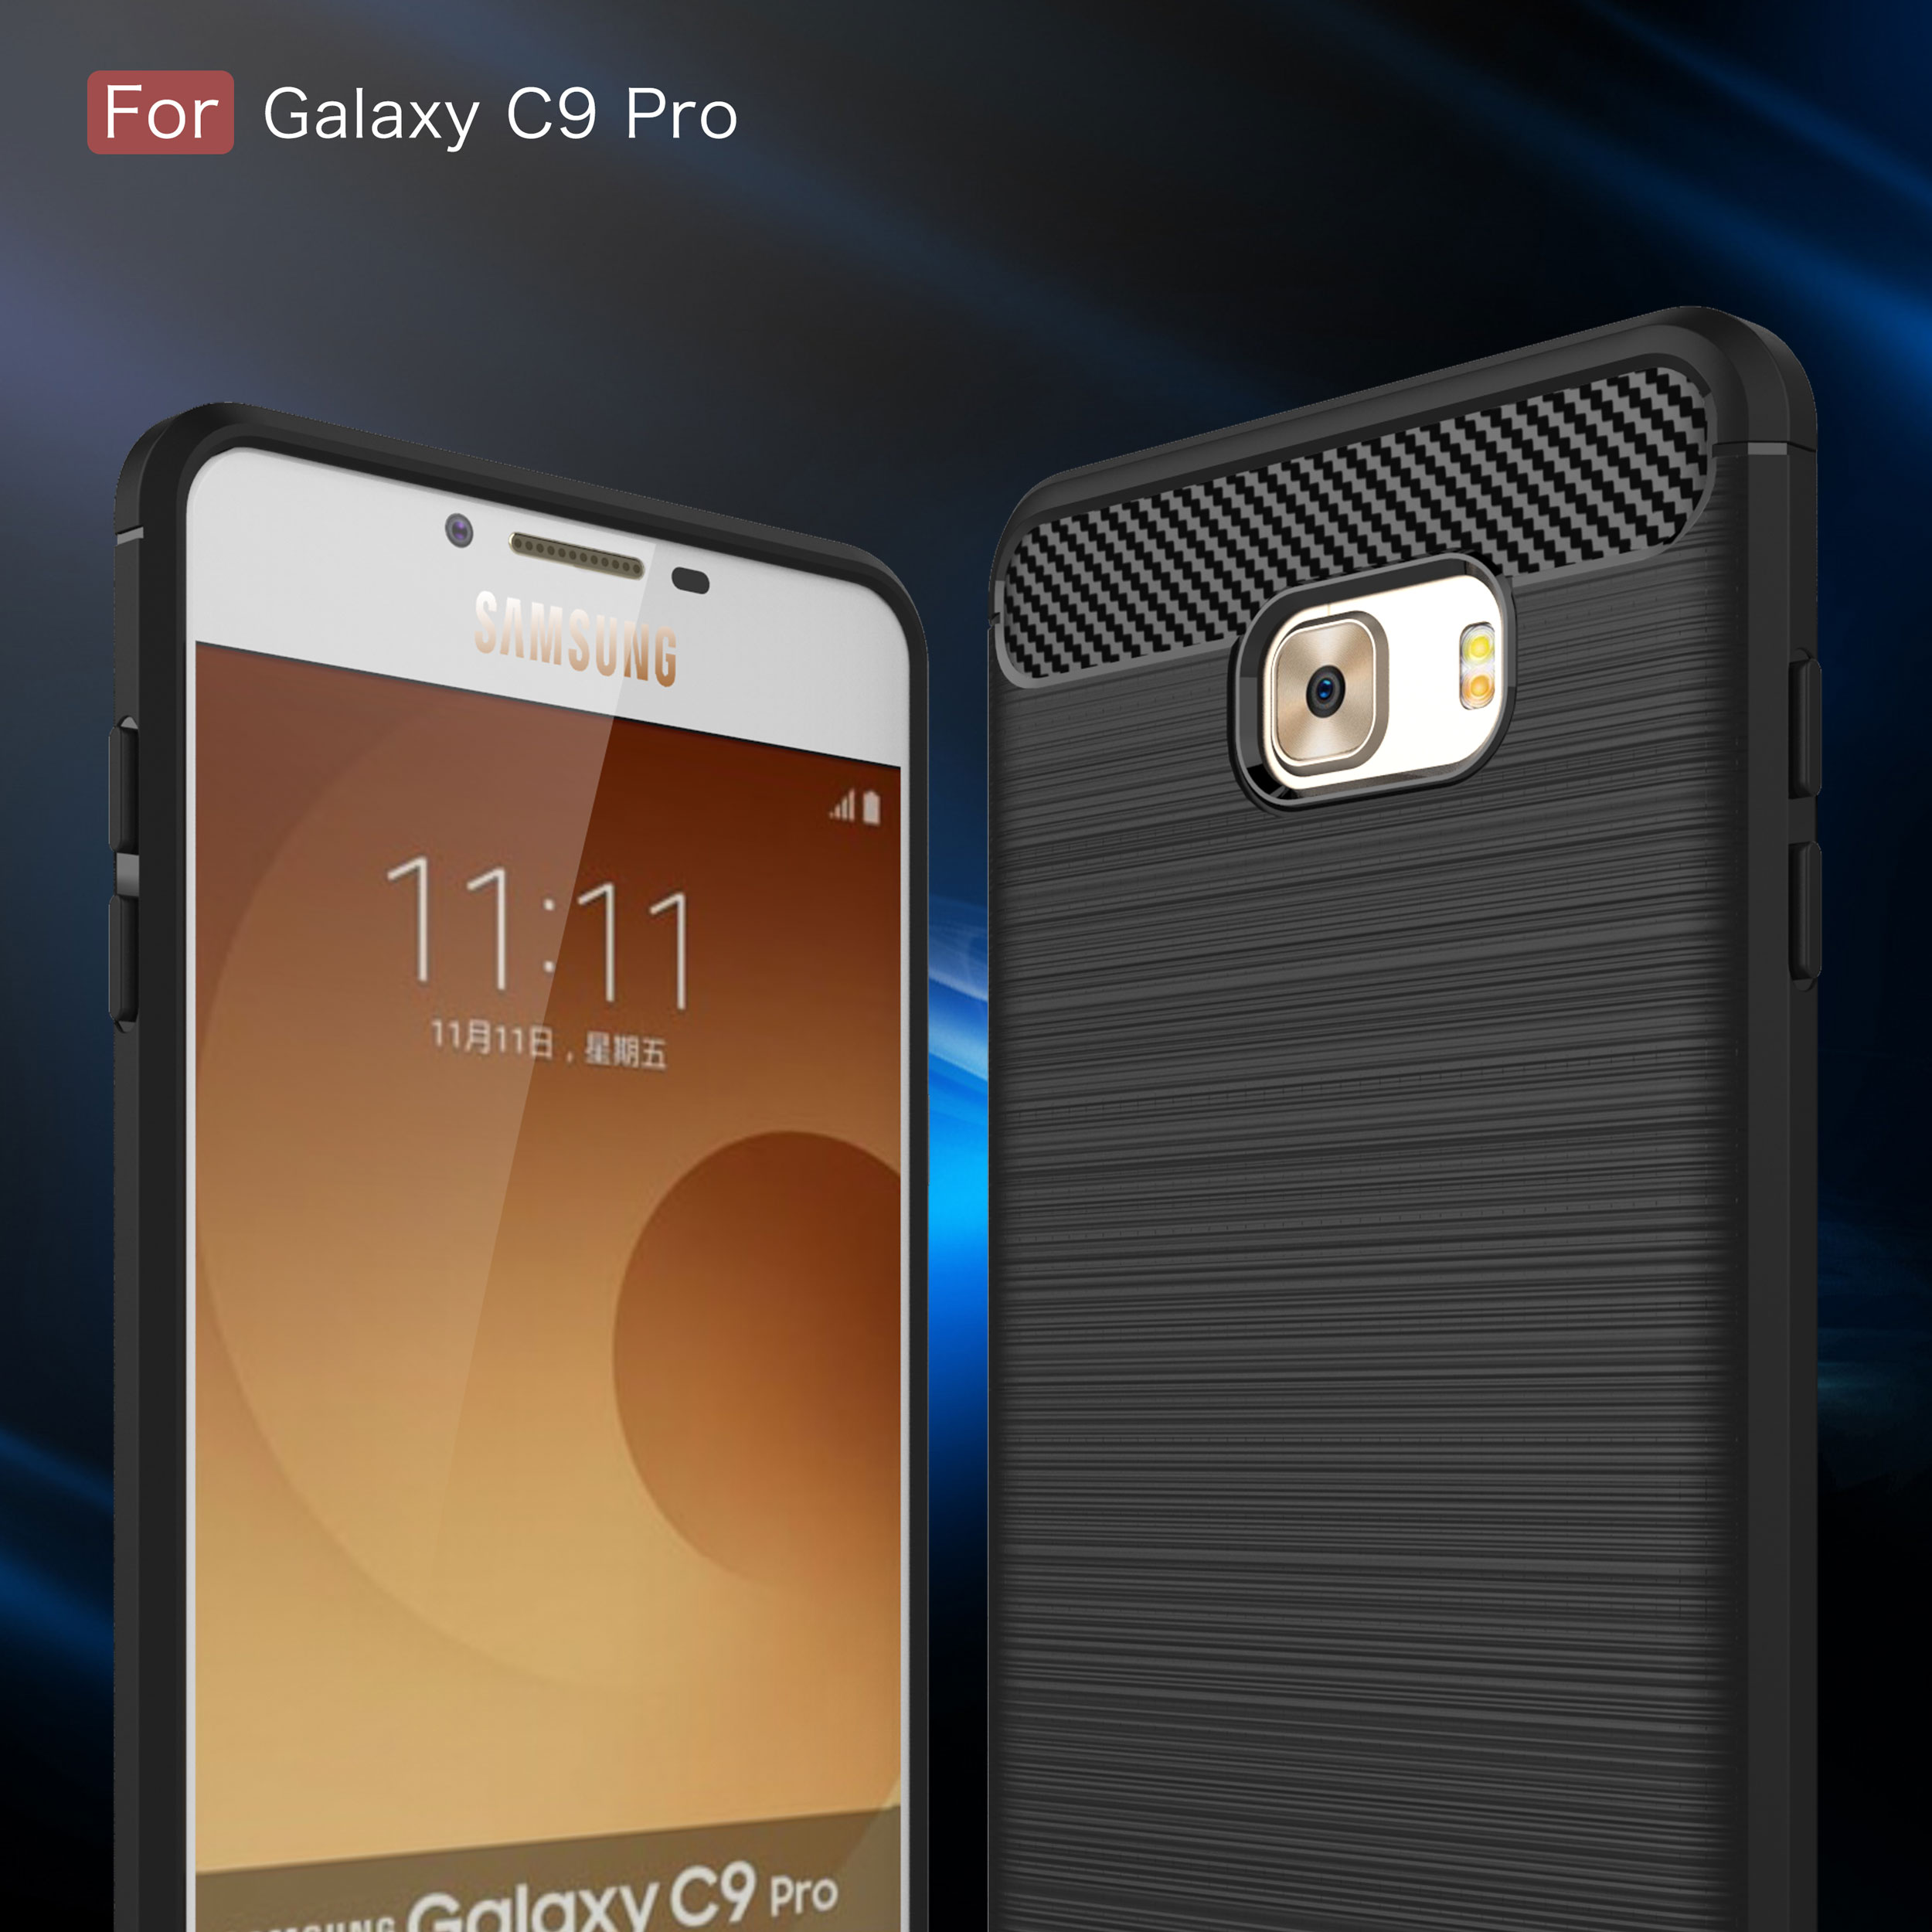 Aliexpress Buy Case For Samsung Galaxy C9 Pro Cover Half surrounded Case For Galaxy C 9 Pro SM C900Y DS C900F DS C9000 C9008 Cover Phone Shell from